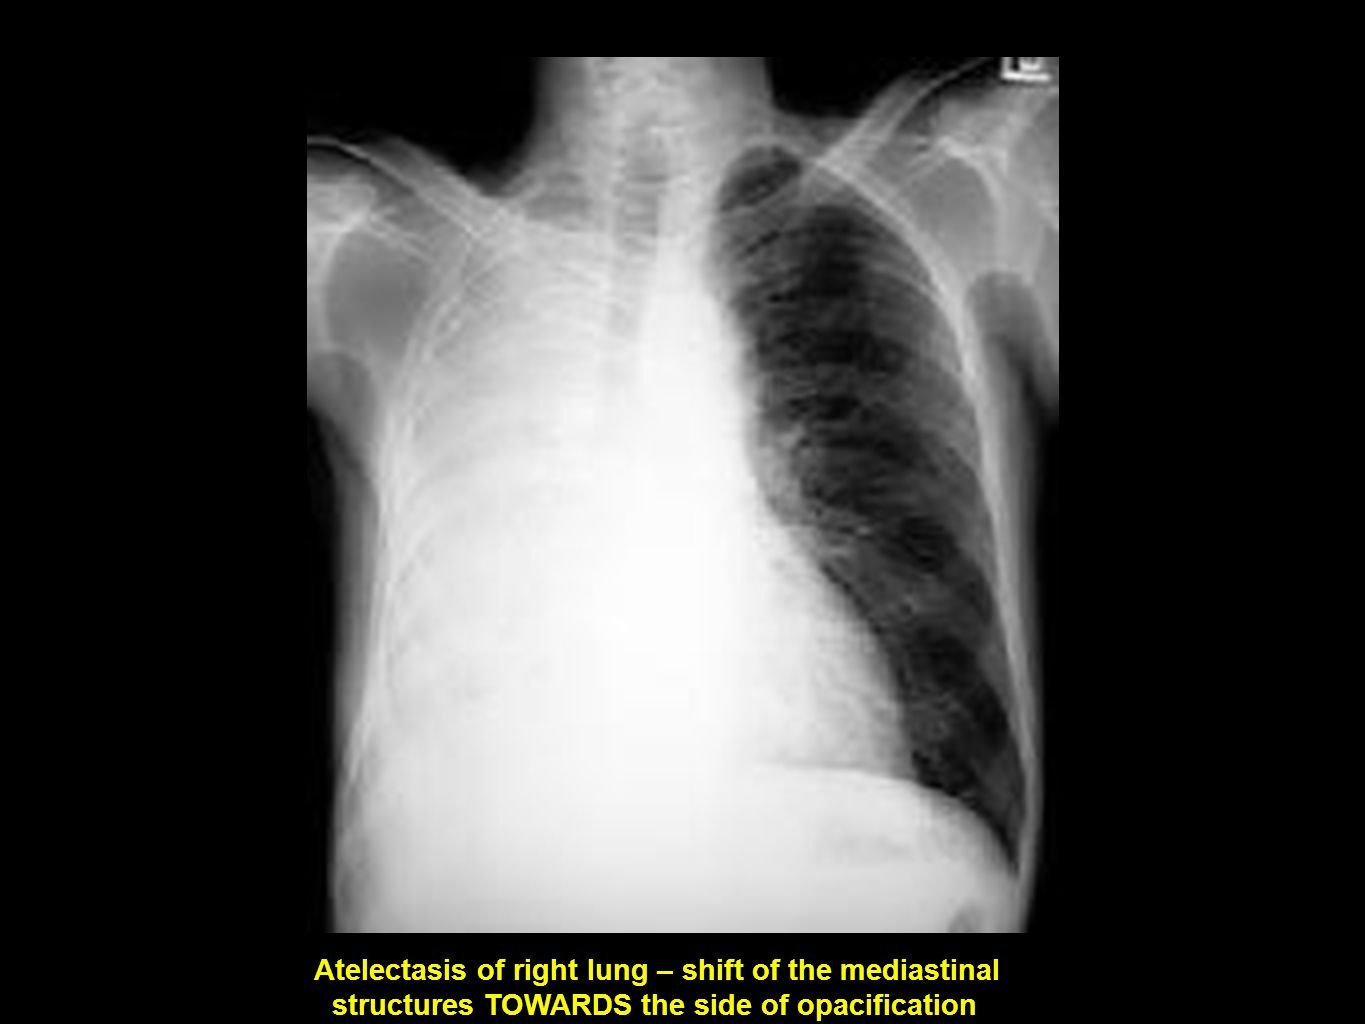 Atelectasis of right lung – shift of the mediastinal structures TOWARDS the side of opacification